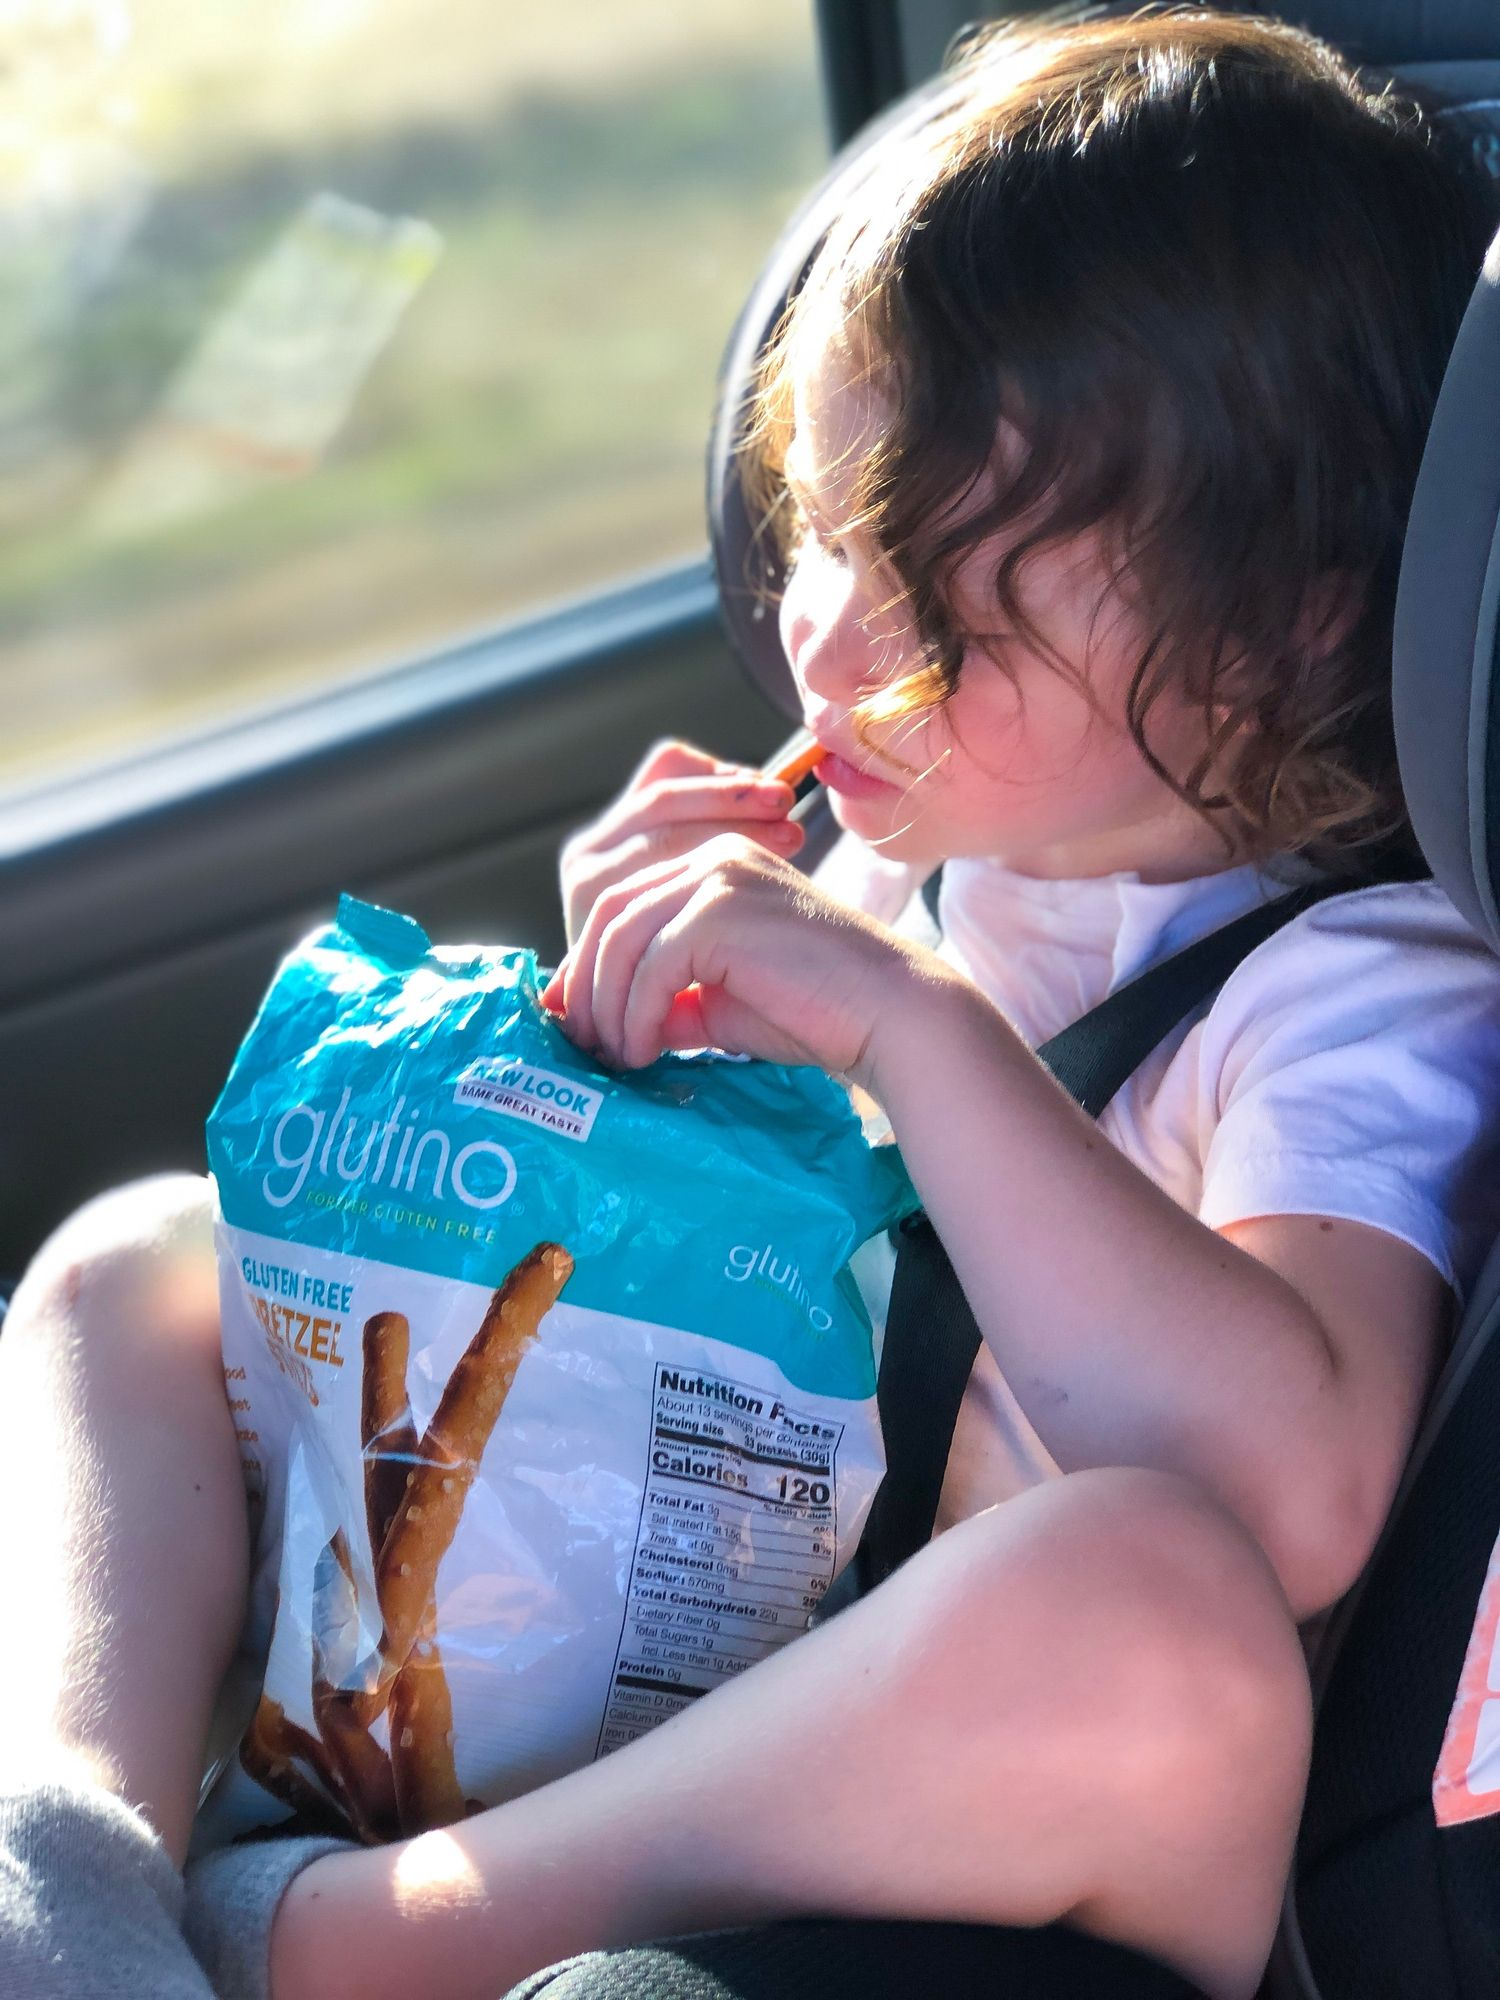 Gluten and dairy free snacks for kids - keeping crumb-free.